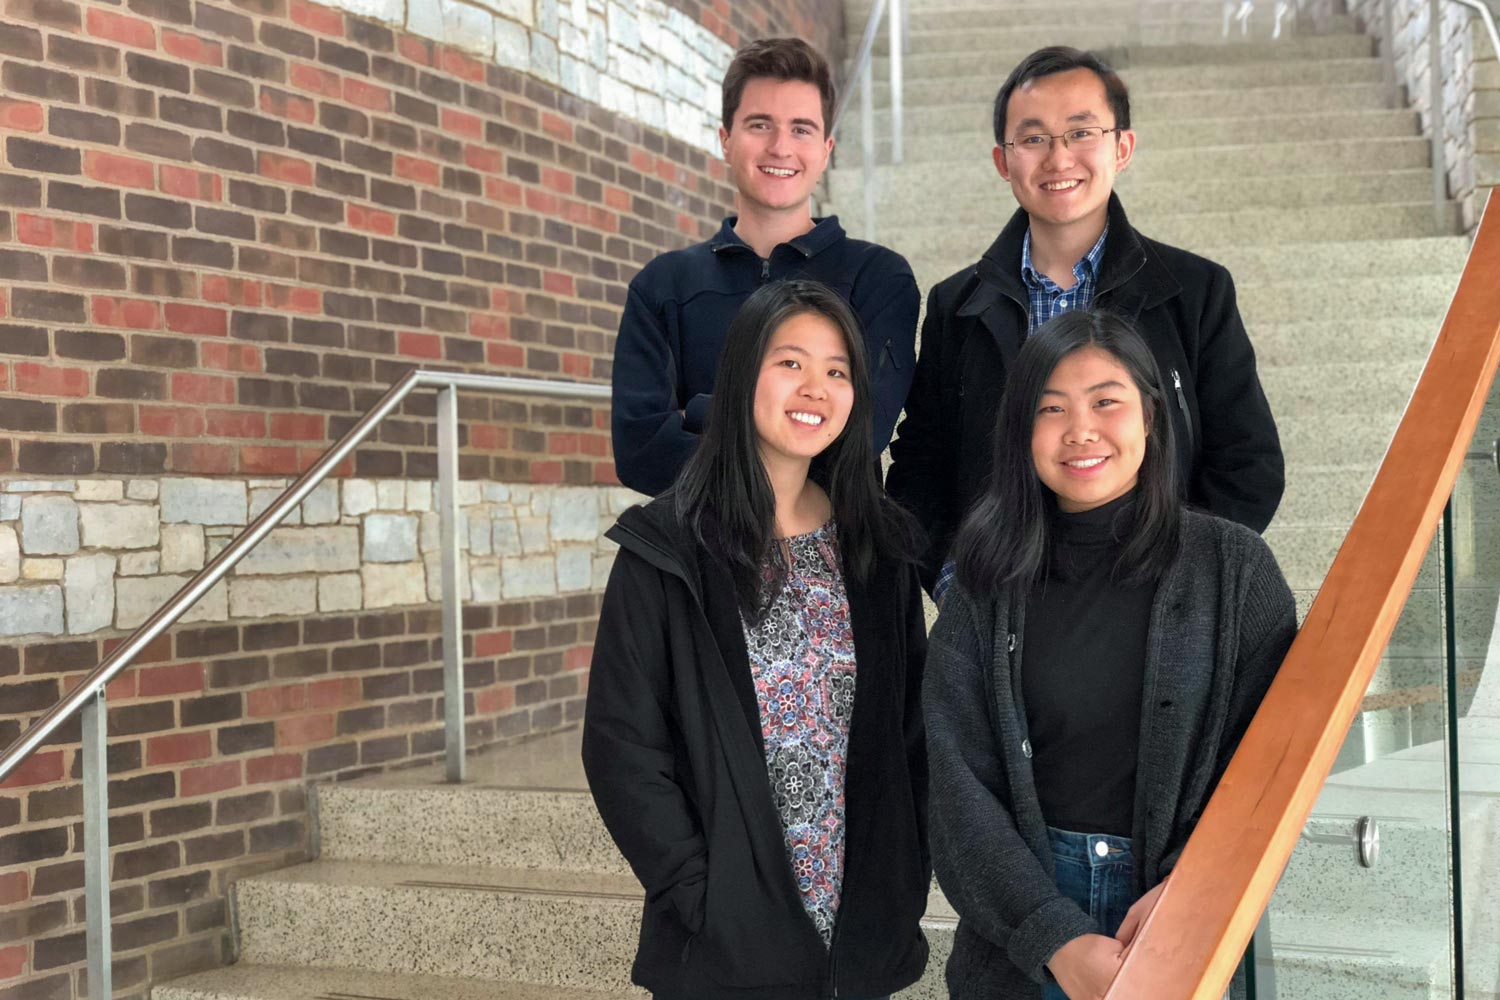 Clockwise from top left, students Jackson Samples, Eric Xu, Eileen Ying and Irena Huang lead the Executive Board of the Virginia Review of Politics.